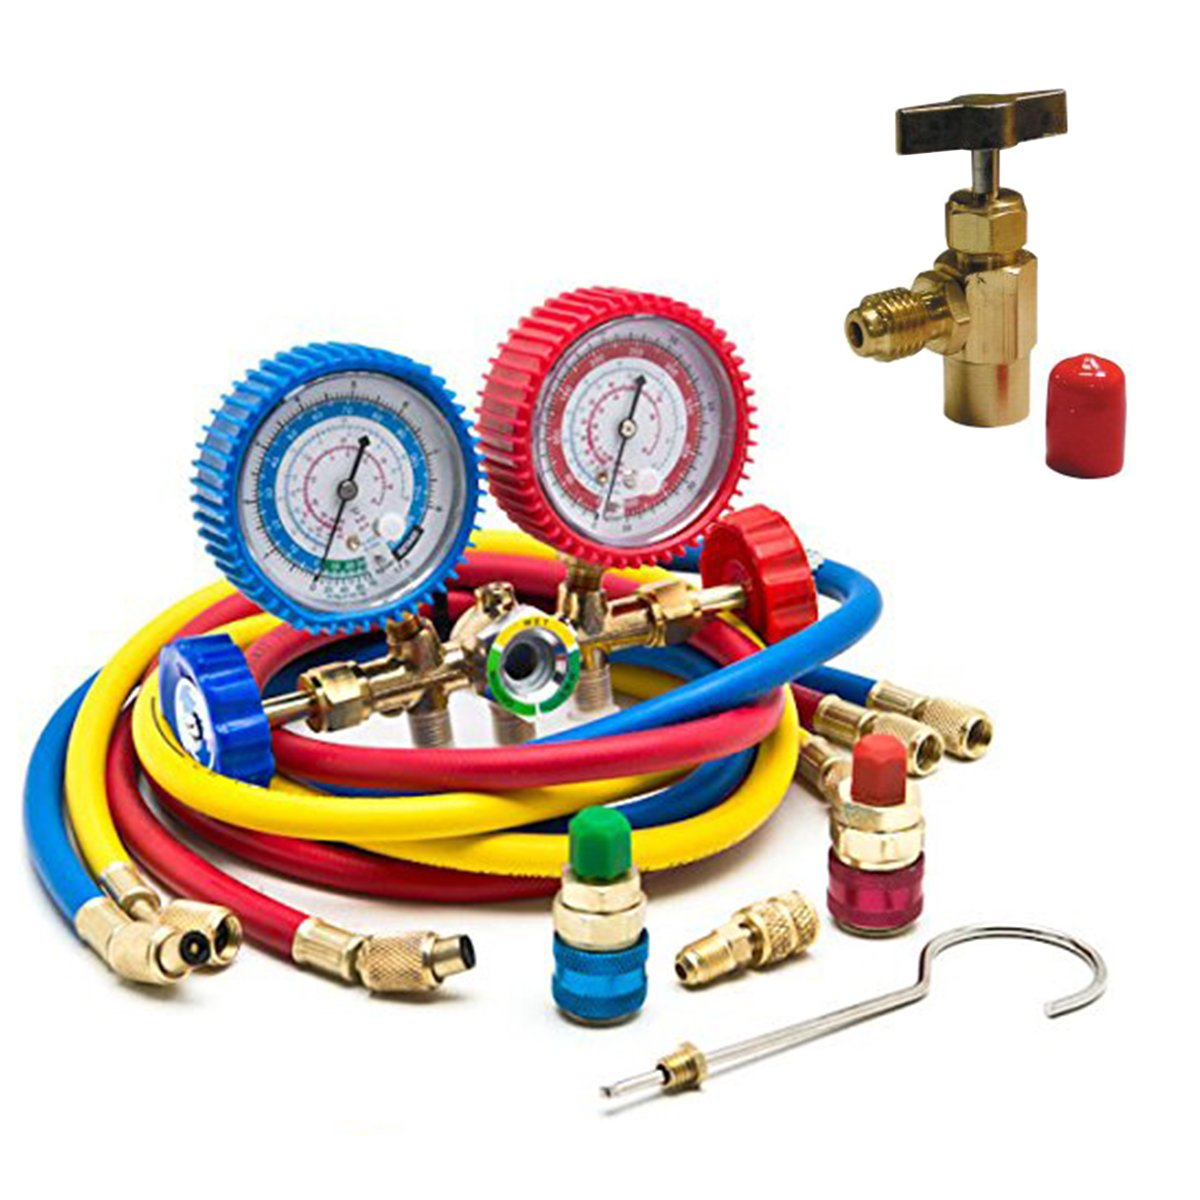 Goetland Diagnostic Manifold Gauge Kit for AC Refrigerant R12 R22 R502  HVAC, with R134a Adapter & Can Tap, 5 ft